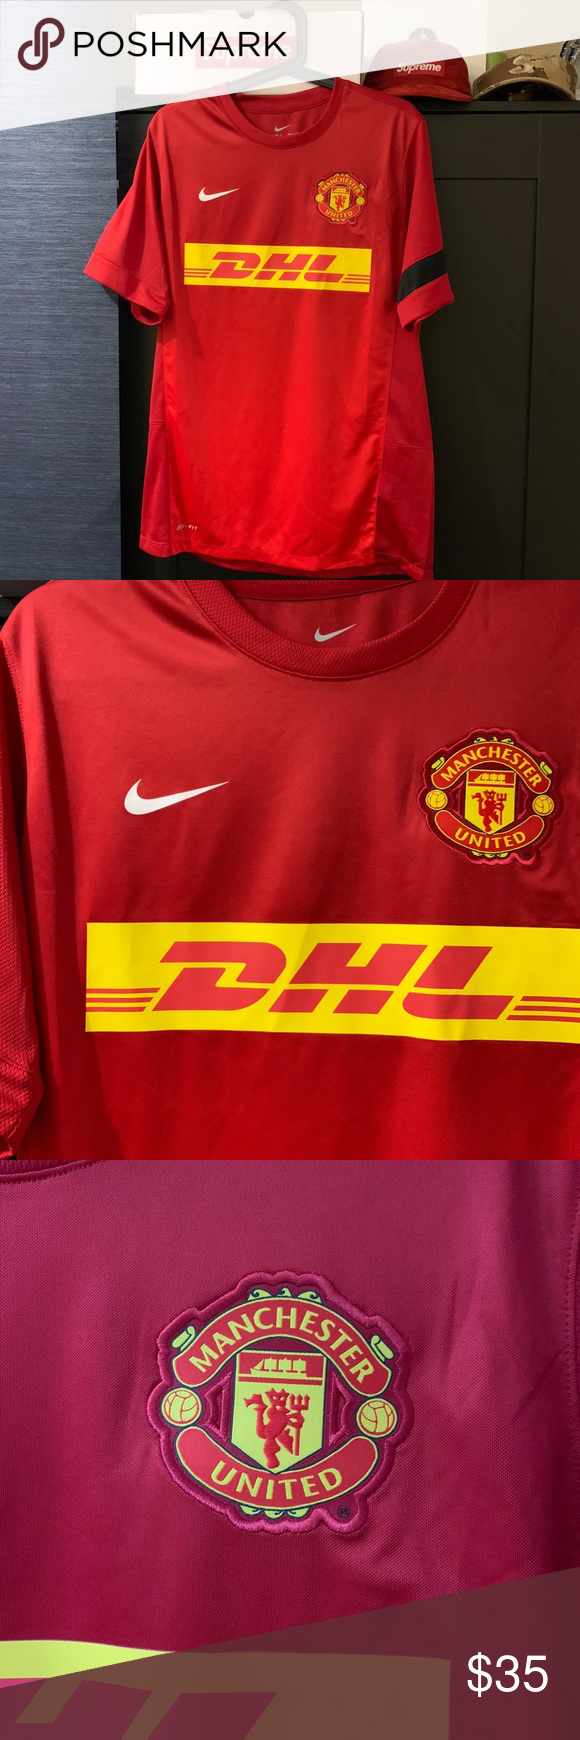 Manchester United Nike Jersey Nike Jersey Nike Shirts Clothes Design